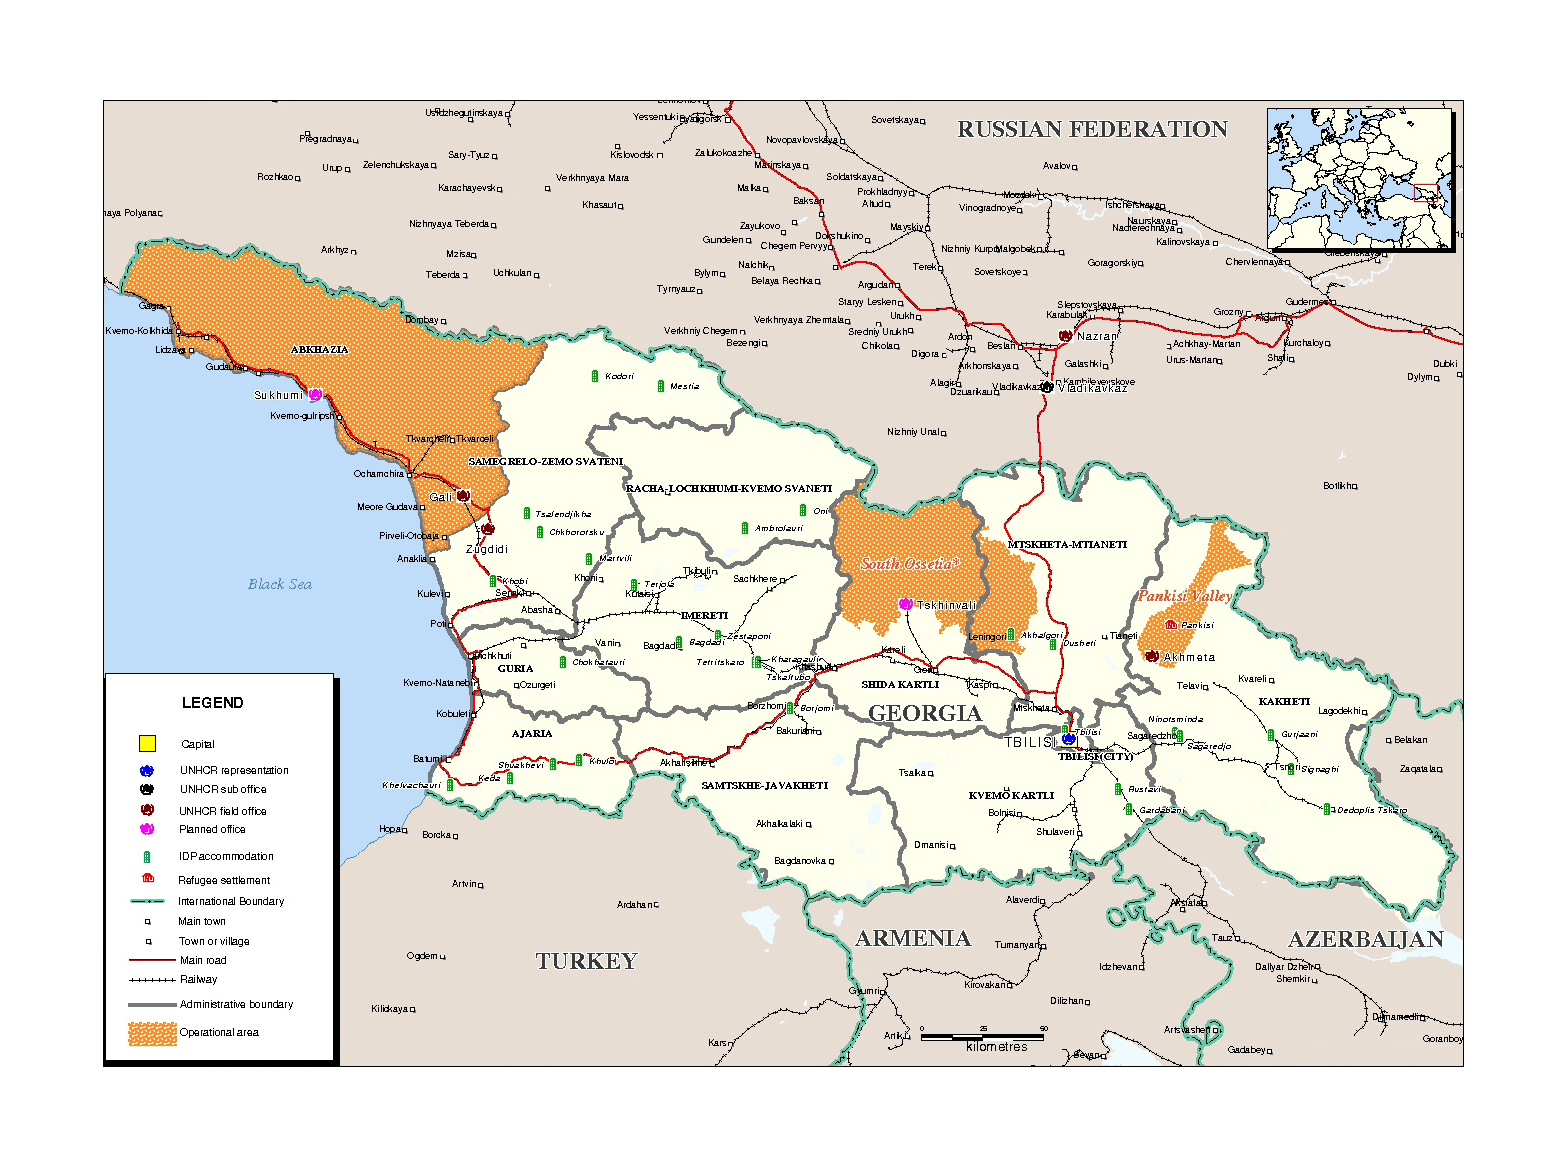 Detailed administrative map of Georgia with Abkhazia and South